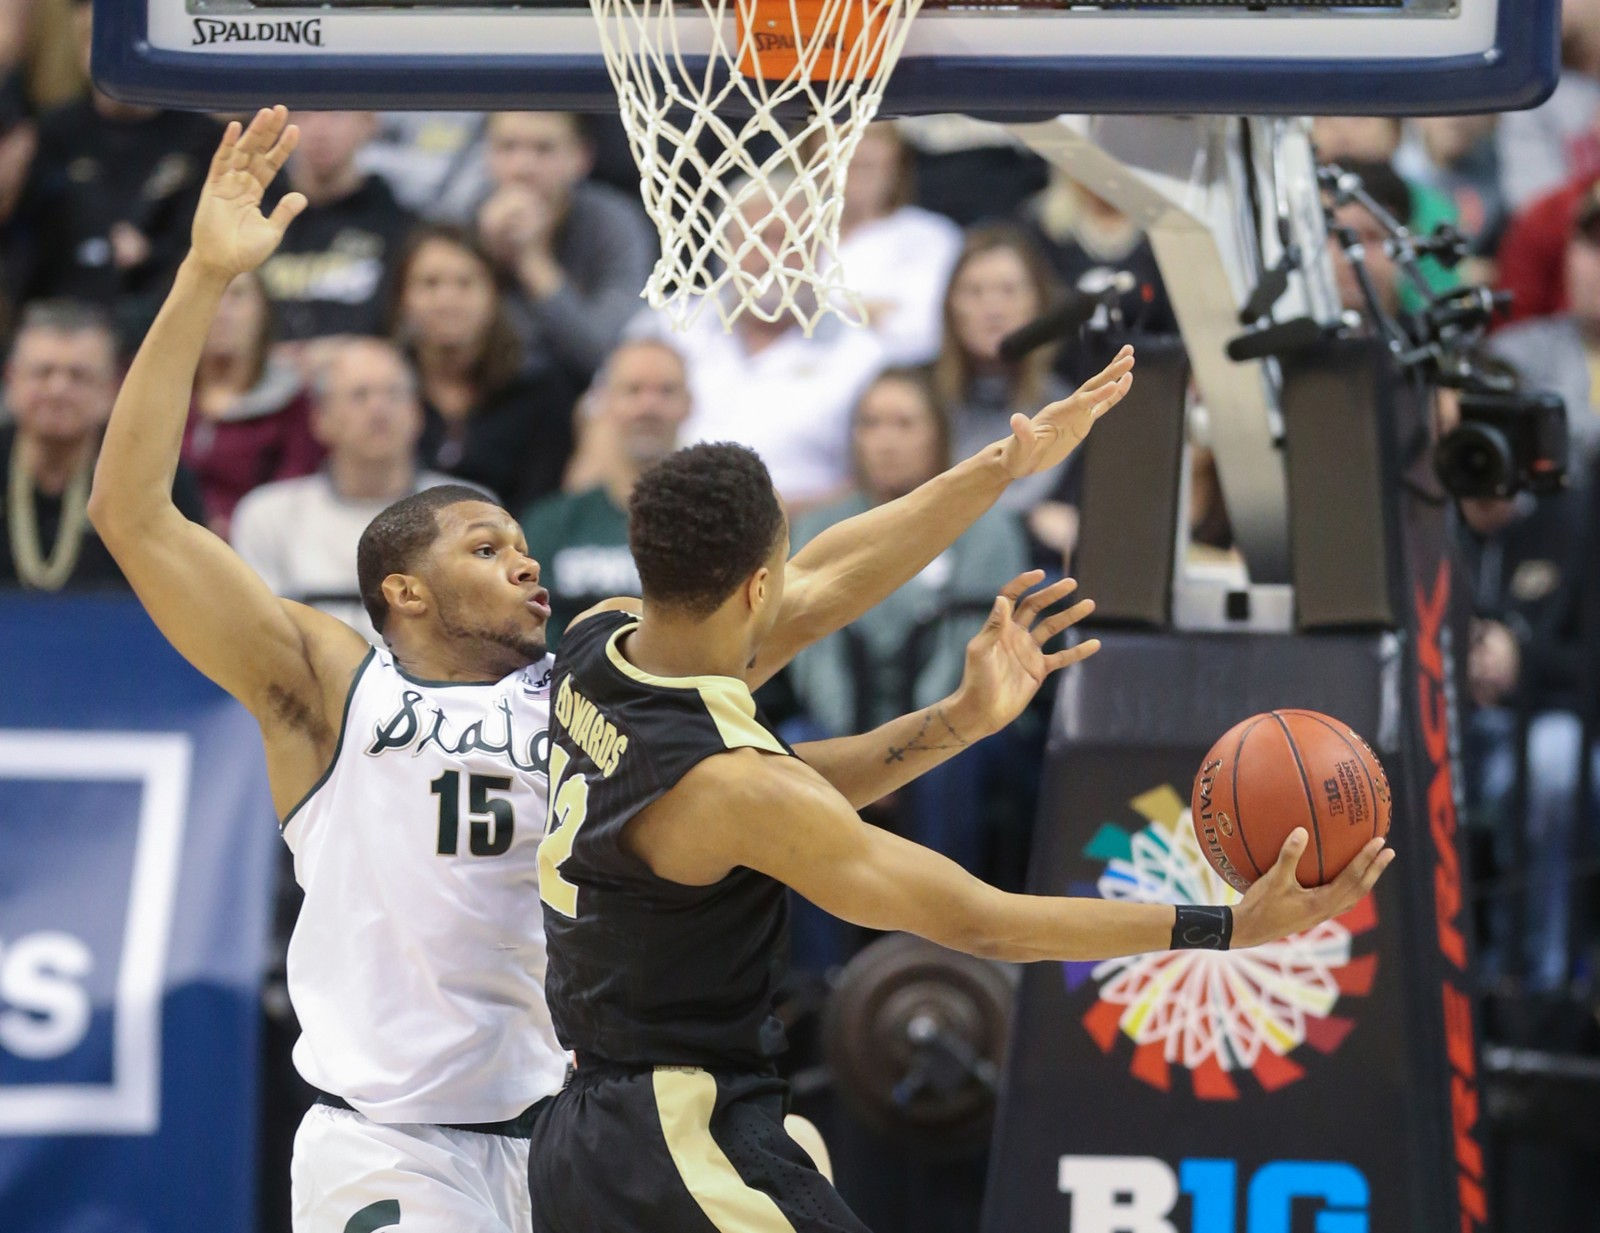 Michigan State's Marvin Clark Jr. defends against Purdue's Vince Edwards during the second half on Sunday, March 13, 2016, at Bankers Life Fieldhouse in Indianapolis.